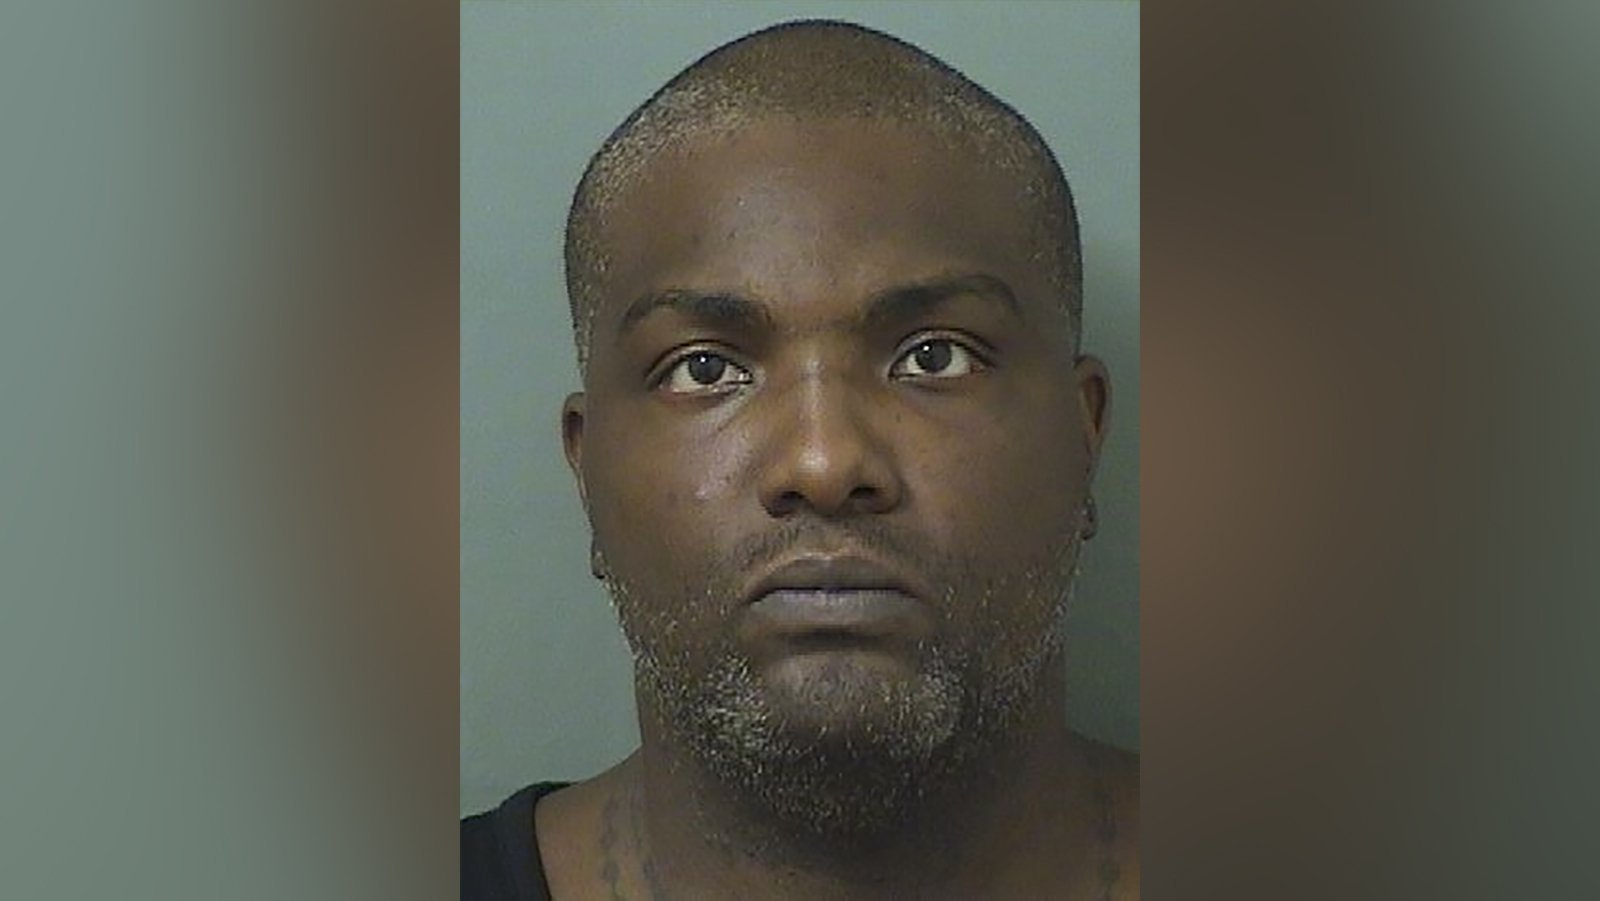 Man arrested in 2016 strangulation death is a 'serial killer' linked to at least three other Florida slayings, police say